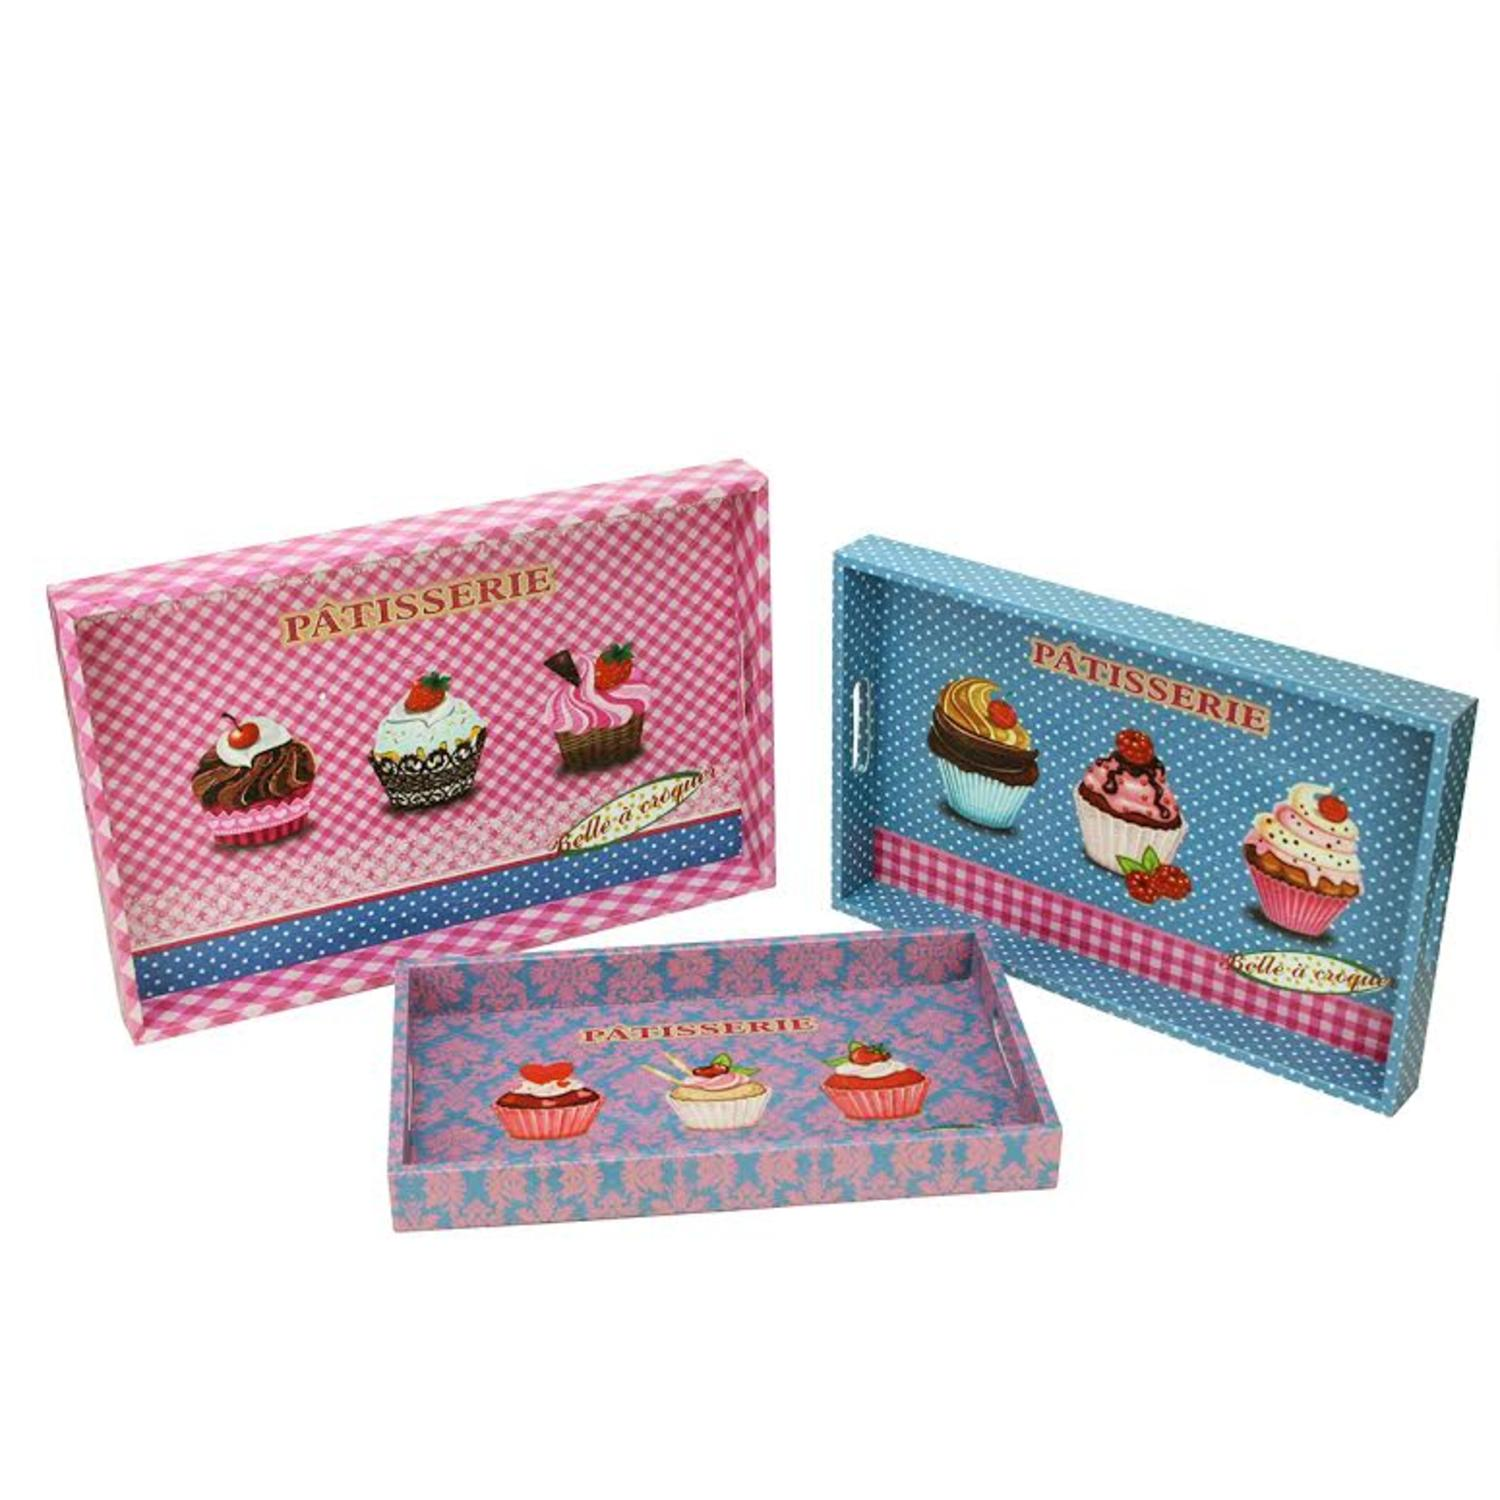 Set of 3 Decorative Pink and Blue Patisserie and Cupcakes Wooden Rectangular Serving Trays